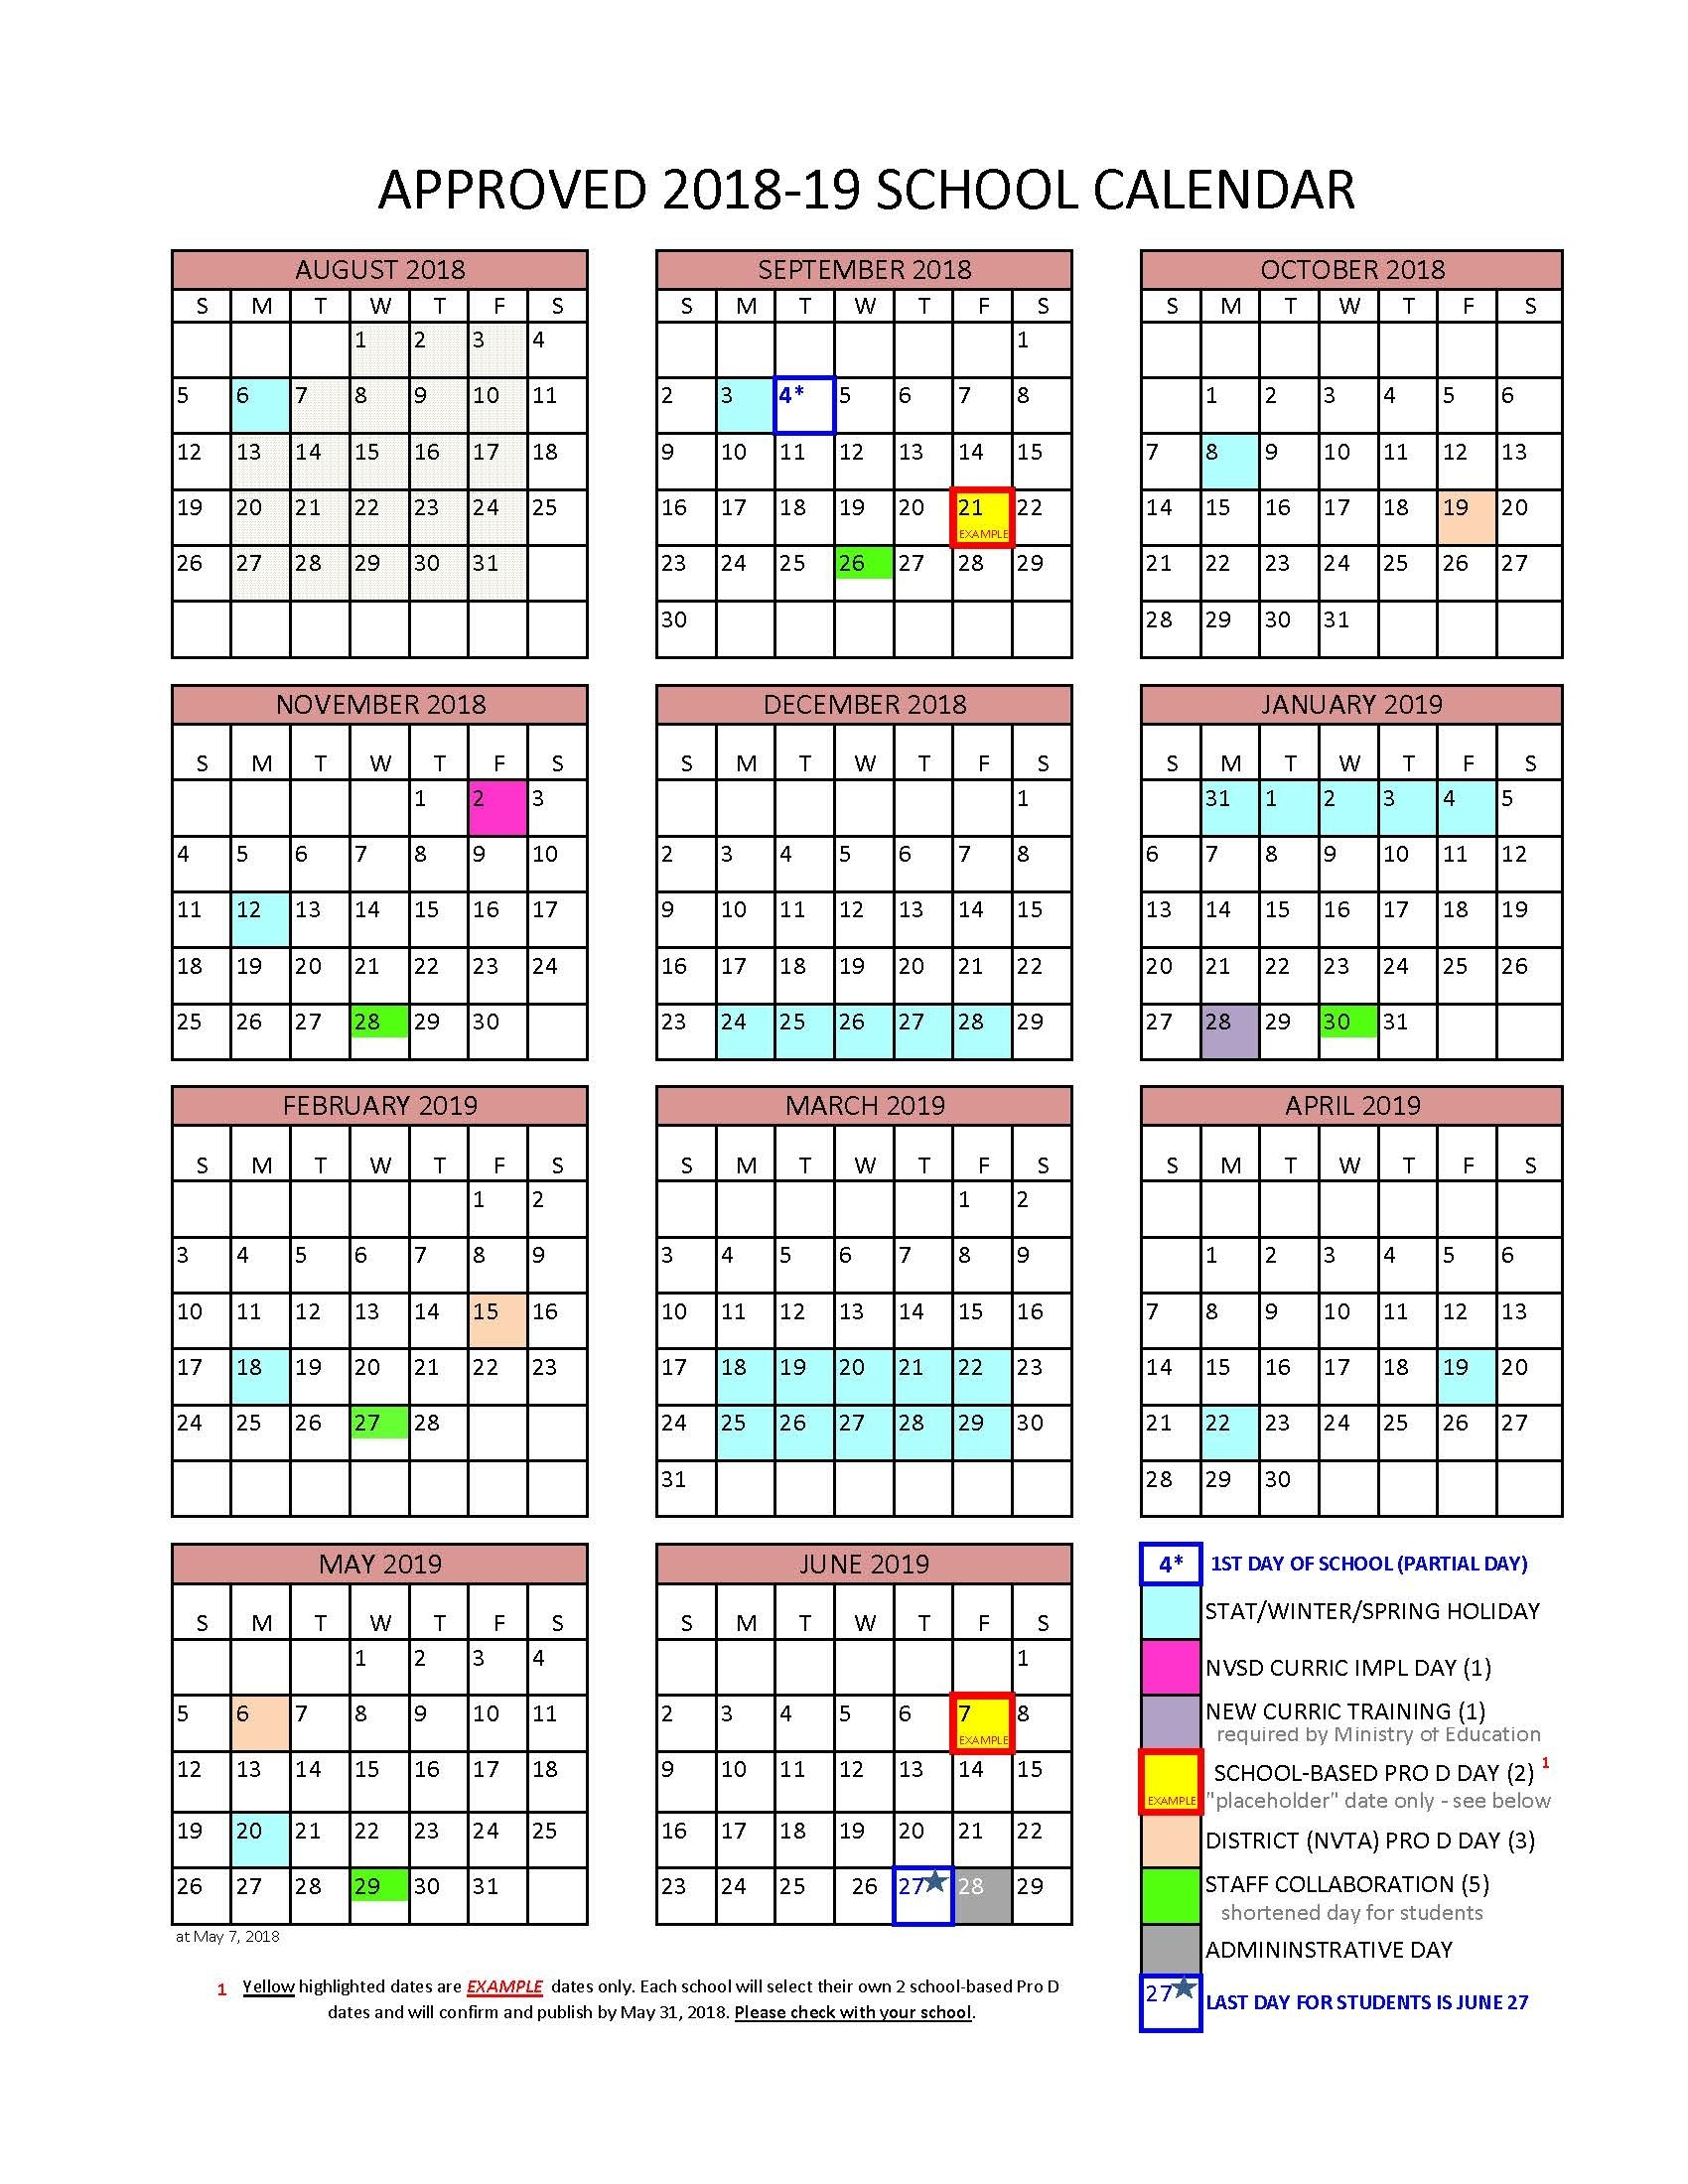 District Calendar - North Vancouver School District_U Of A School Year Calendar